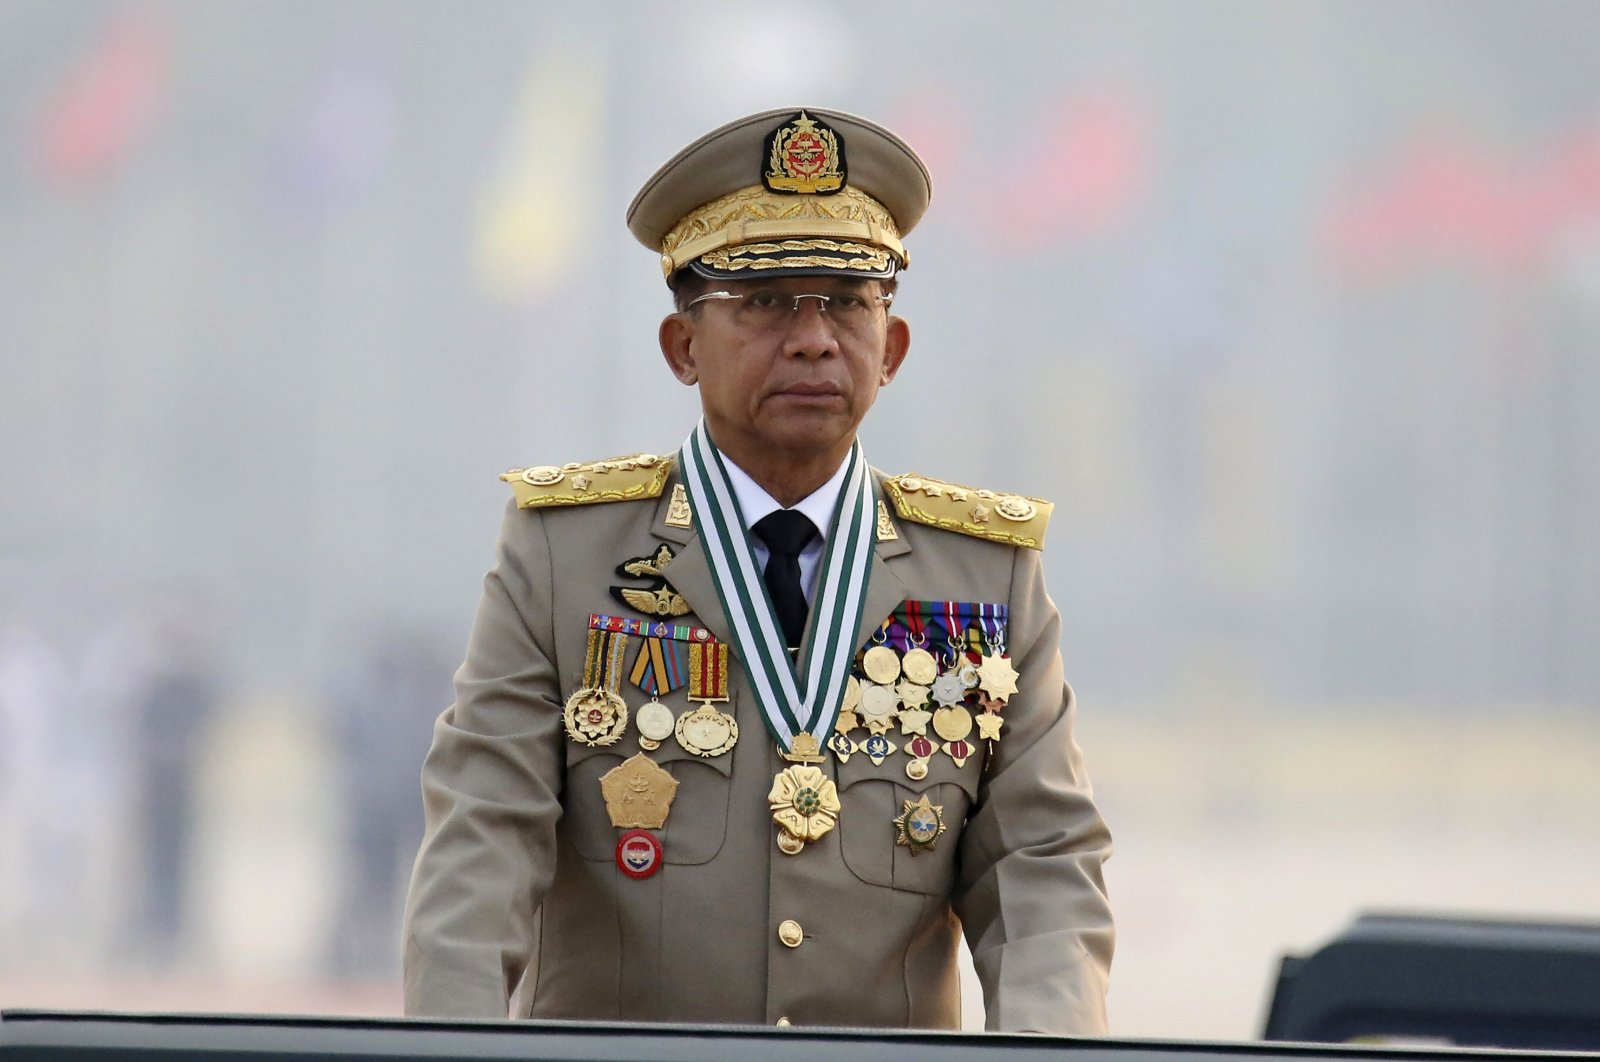 Myanmar's Commander-in-Chief Senior Gen. Min Aung Hlaing presides an army parade on Armed Forces Day in Naypyitaw, Myanmar, March 27, 2021. (AP Photo)